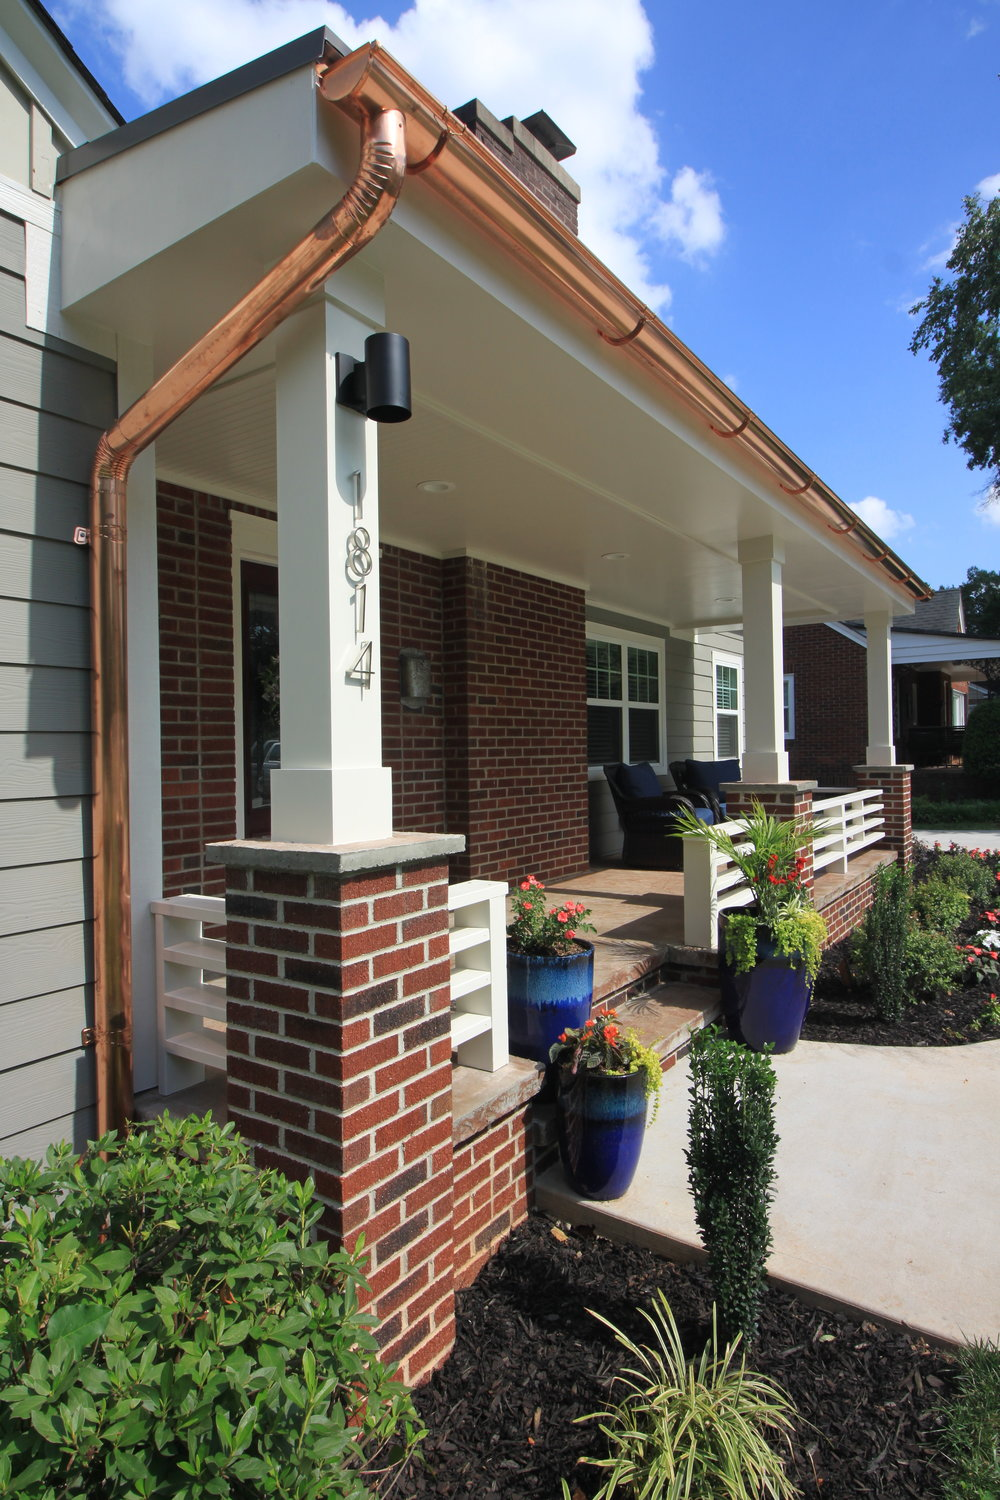 North_Main_Greenville_Front_Porch_2.JPG